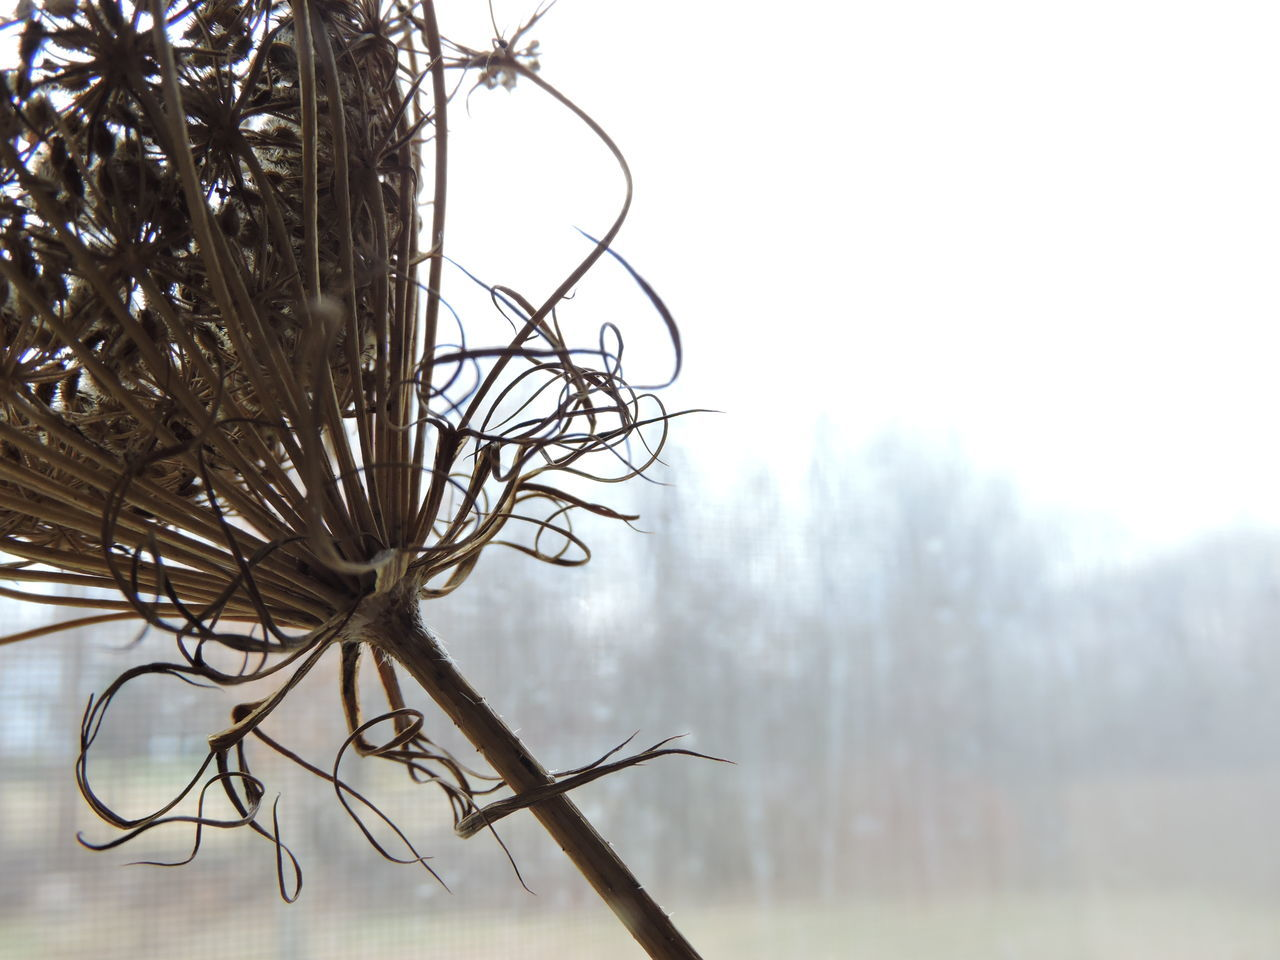 day, outdoors, no people, focus on foreground, close-up, nature, dried plant, tree, beauty in nature, sky